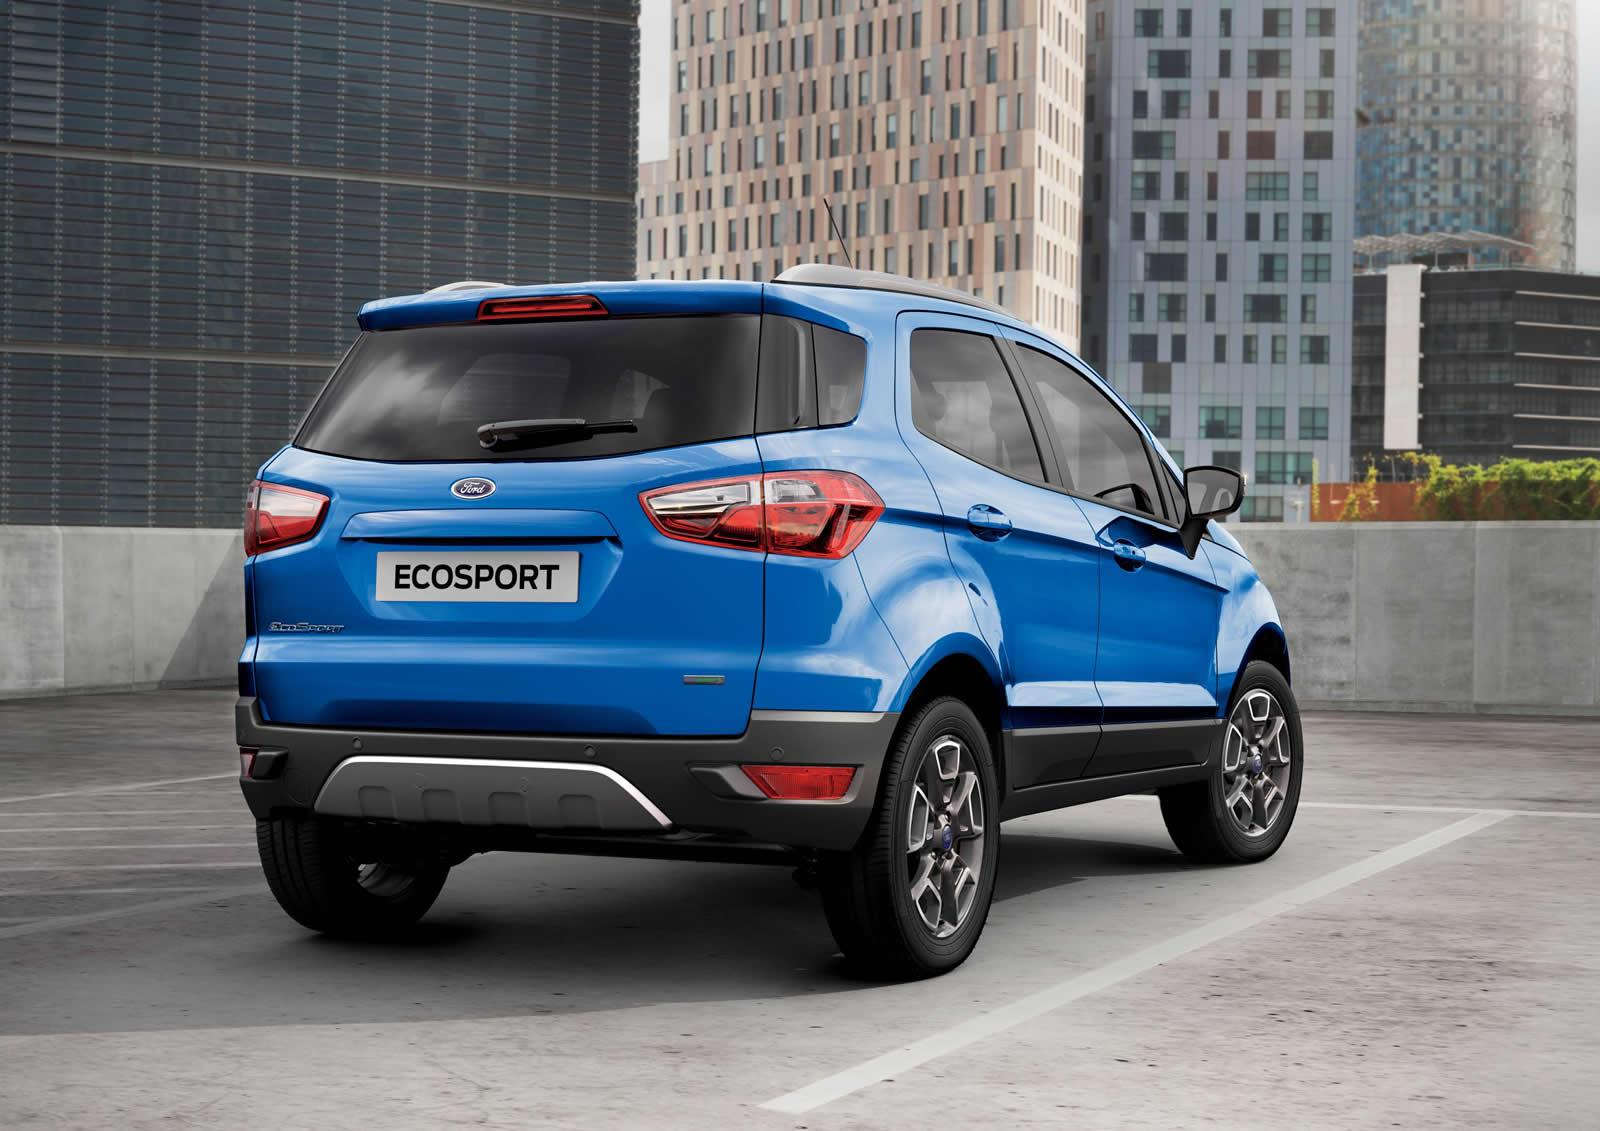 improved more powerful 2016 ford ecosport prices announced. Black Bedroom Furniture Sets. Home Design Ideas